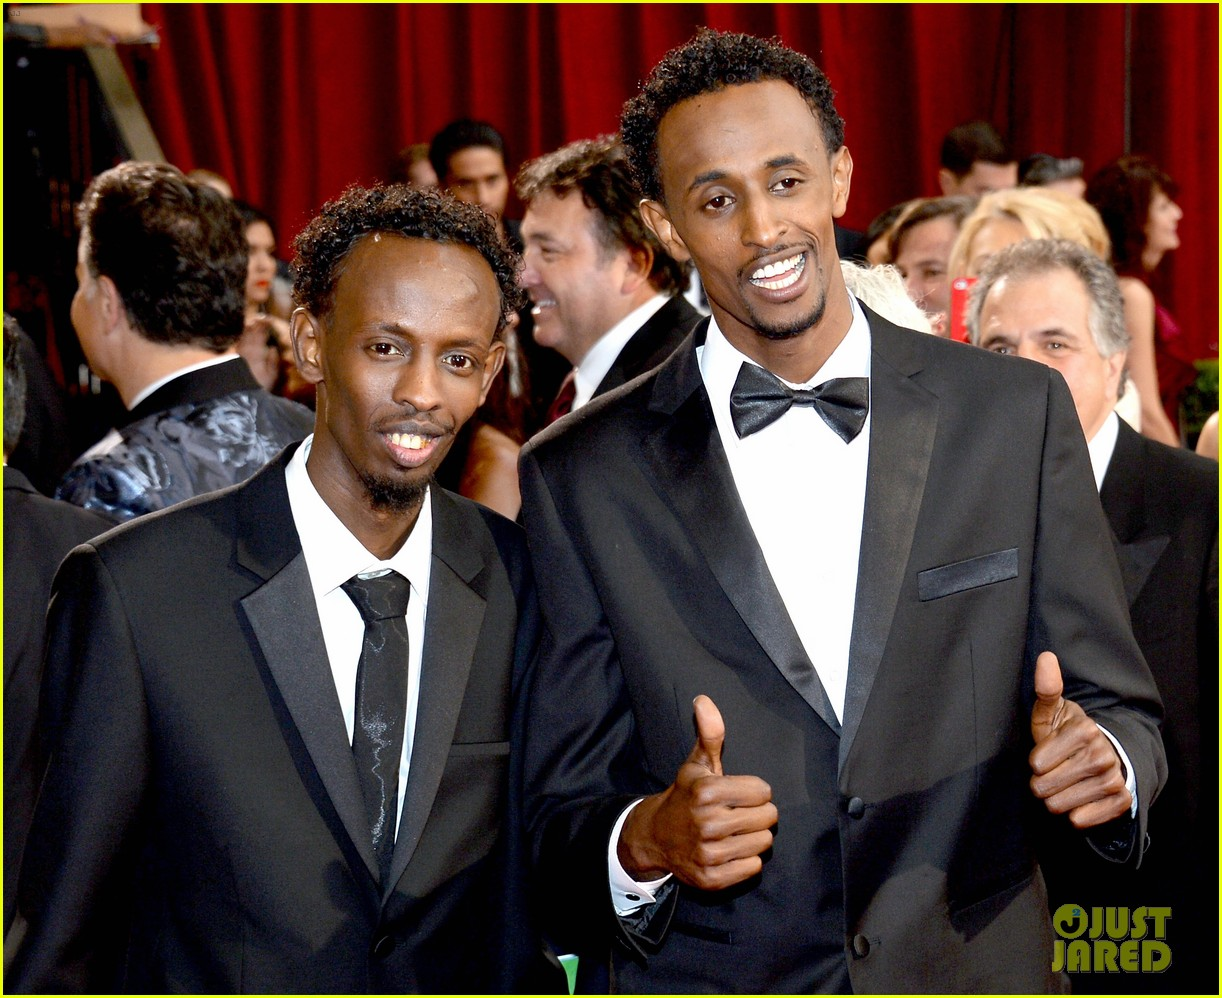 barkhad abdi is the captain now at oscars 2014 red carpet 05